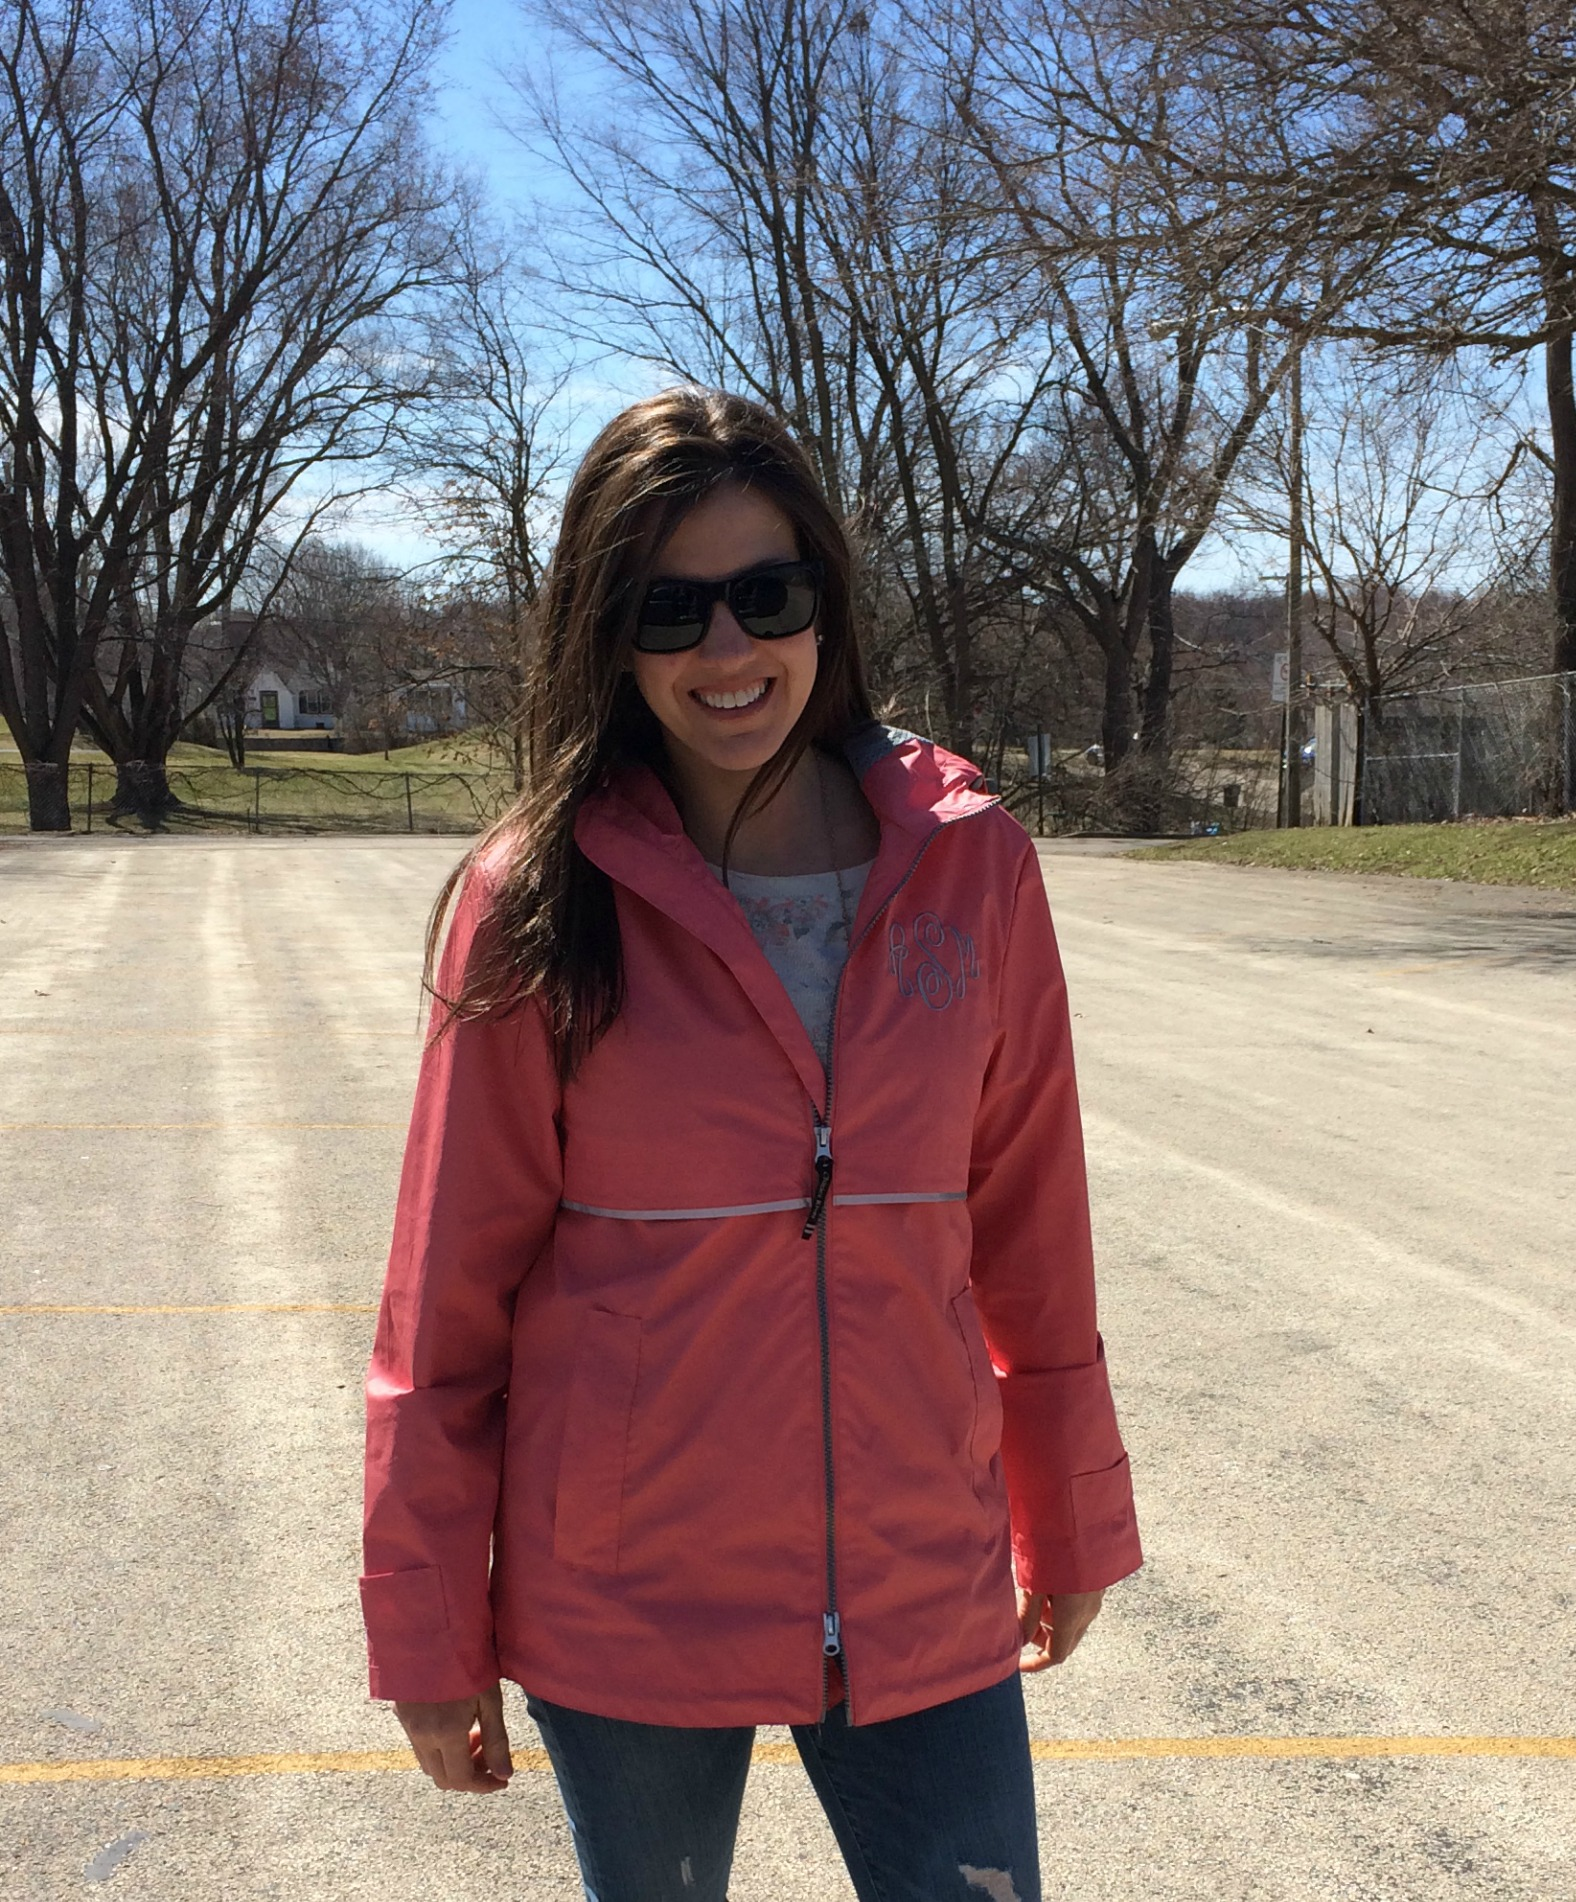 Charles River Apparel Rain Jacket Giveaway - Official Rules